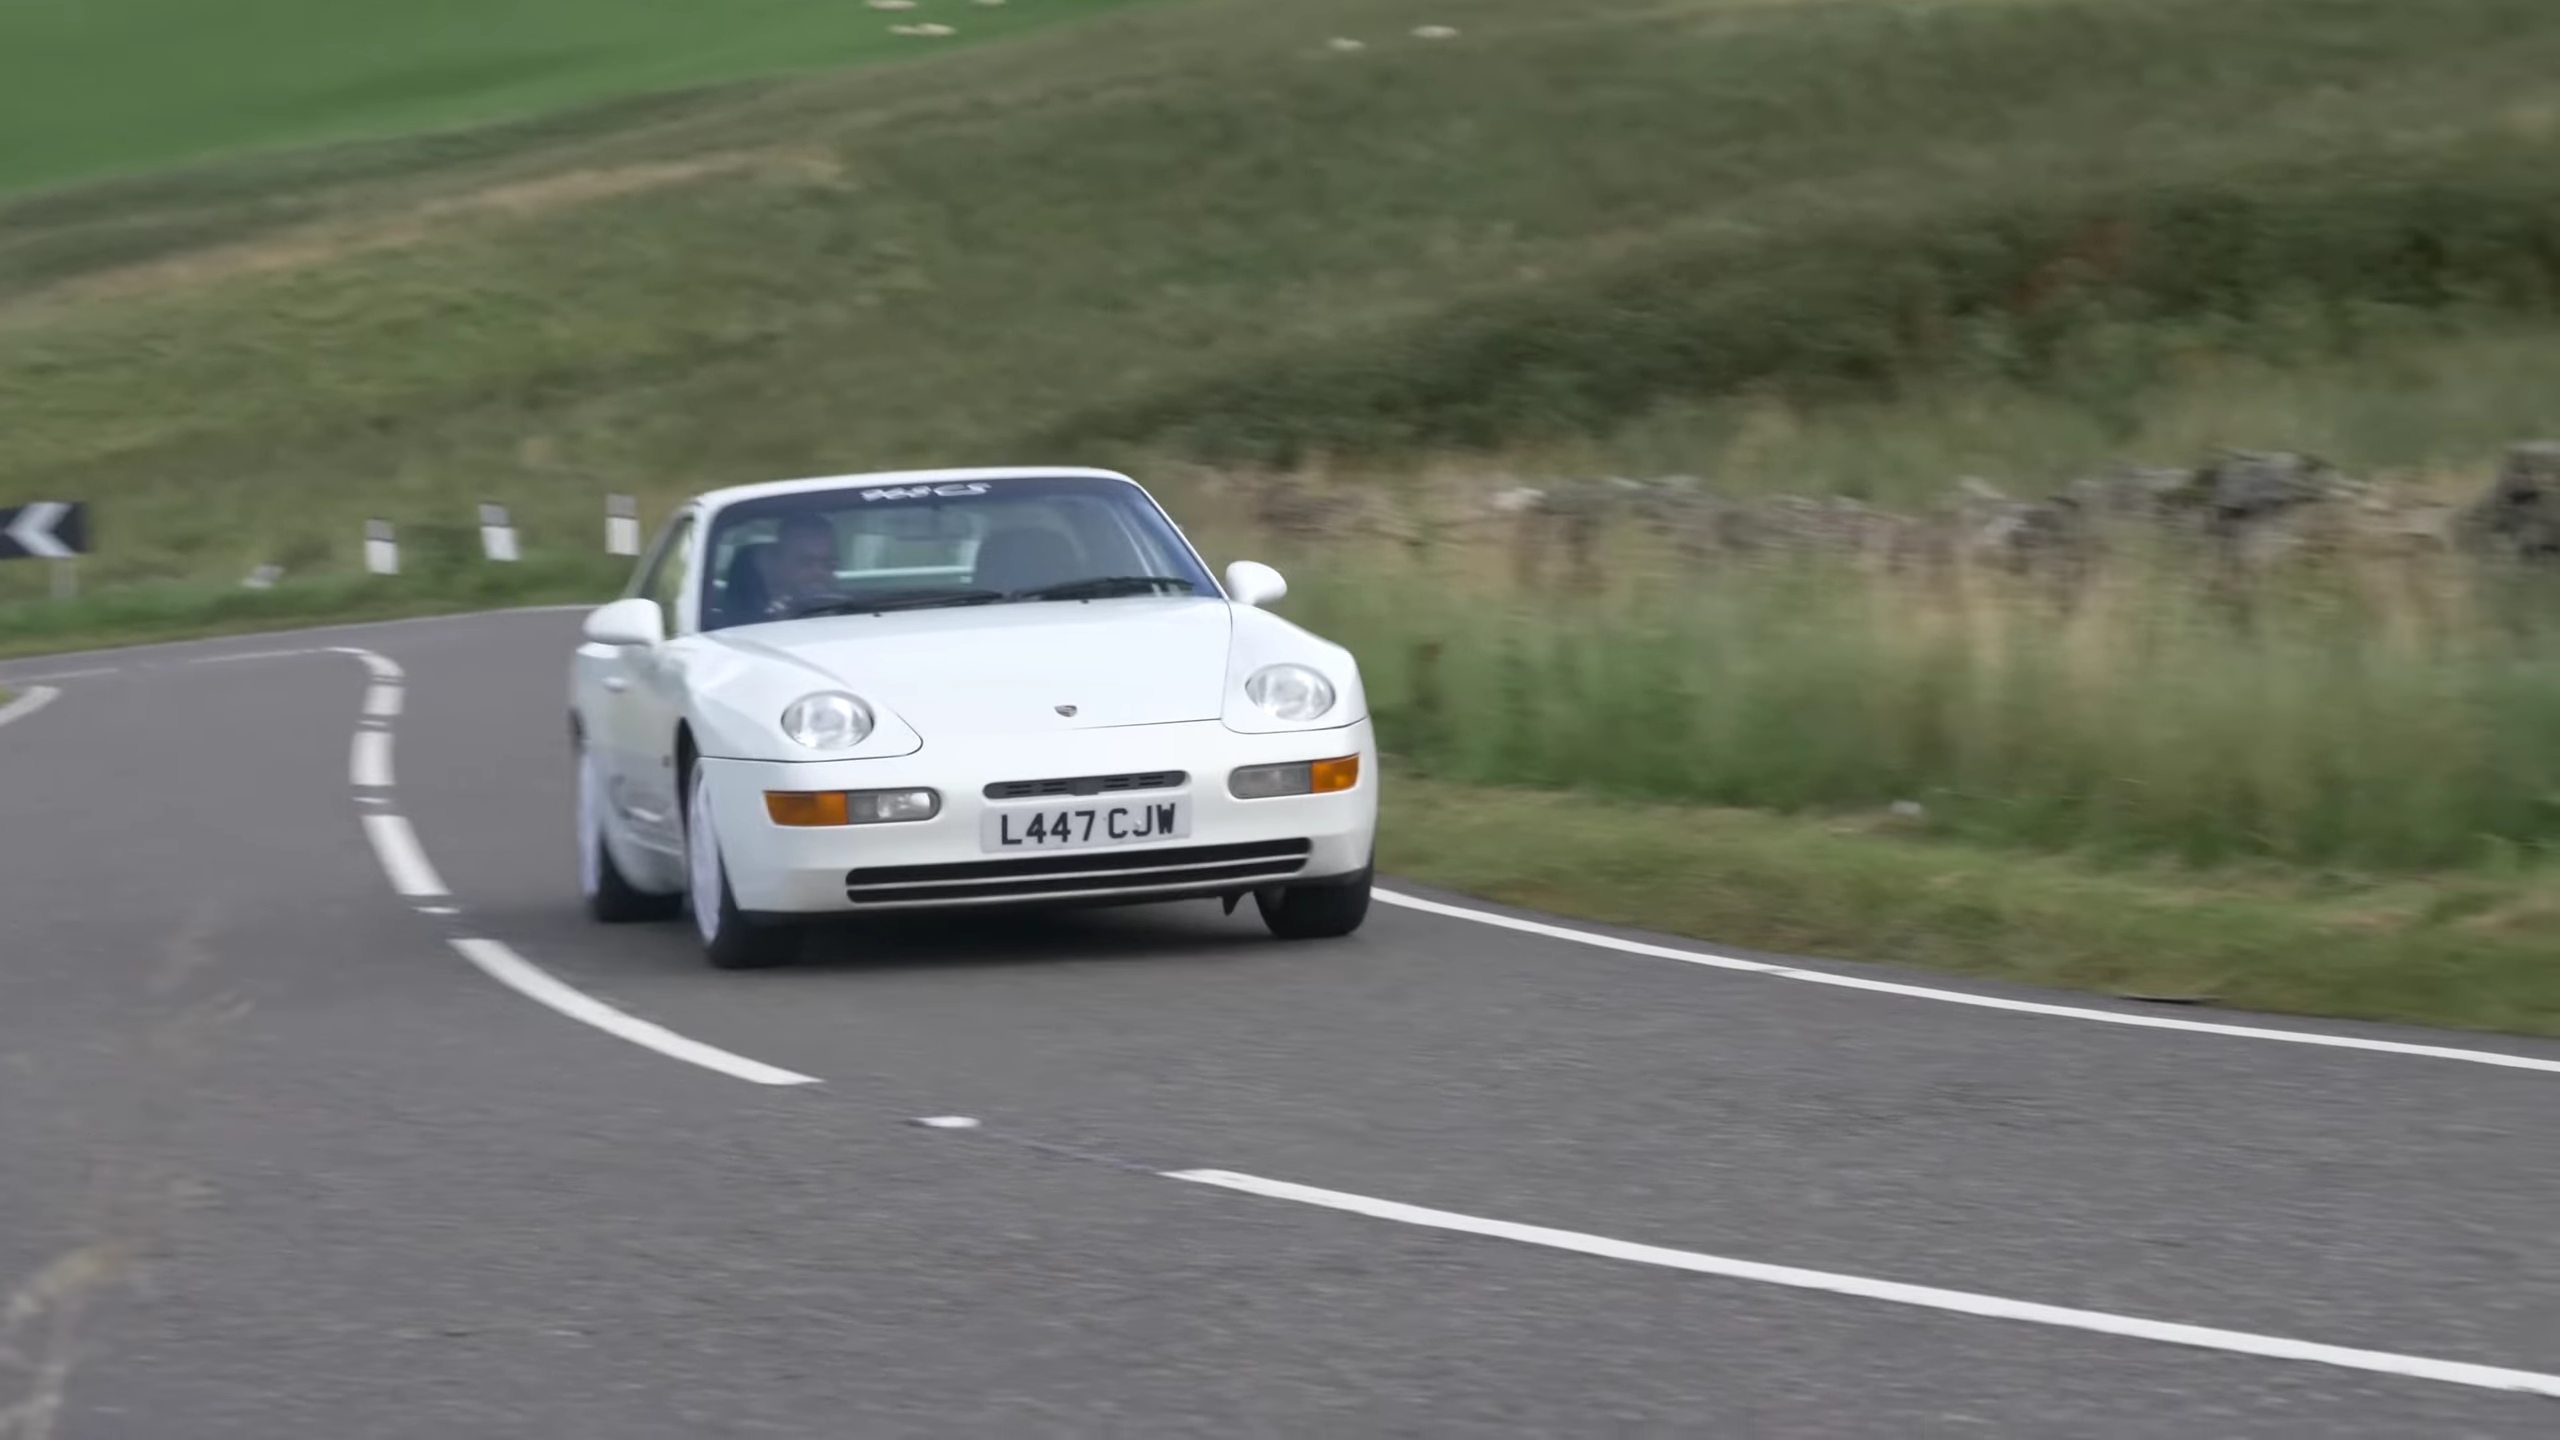 It Is Important That You Know The 968 Clubsport Is The Ultimate Transaxle Porsche Flatsixes